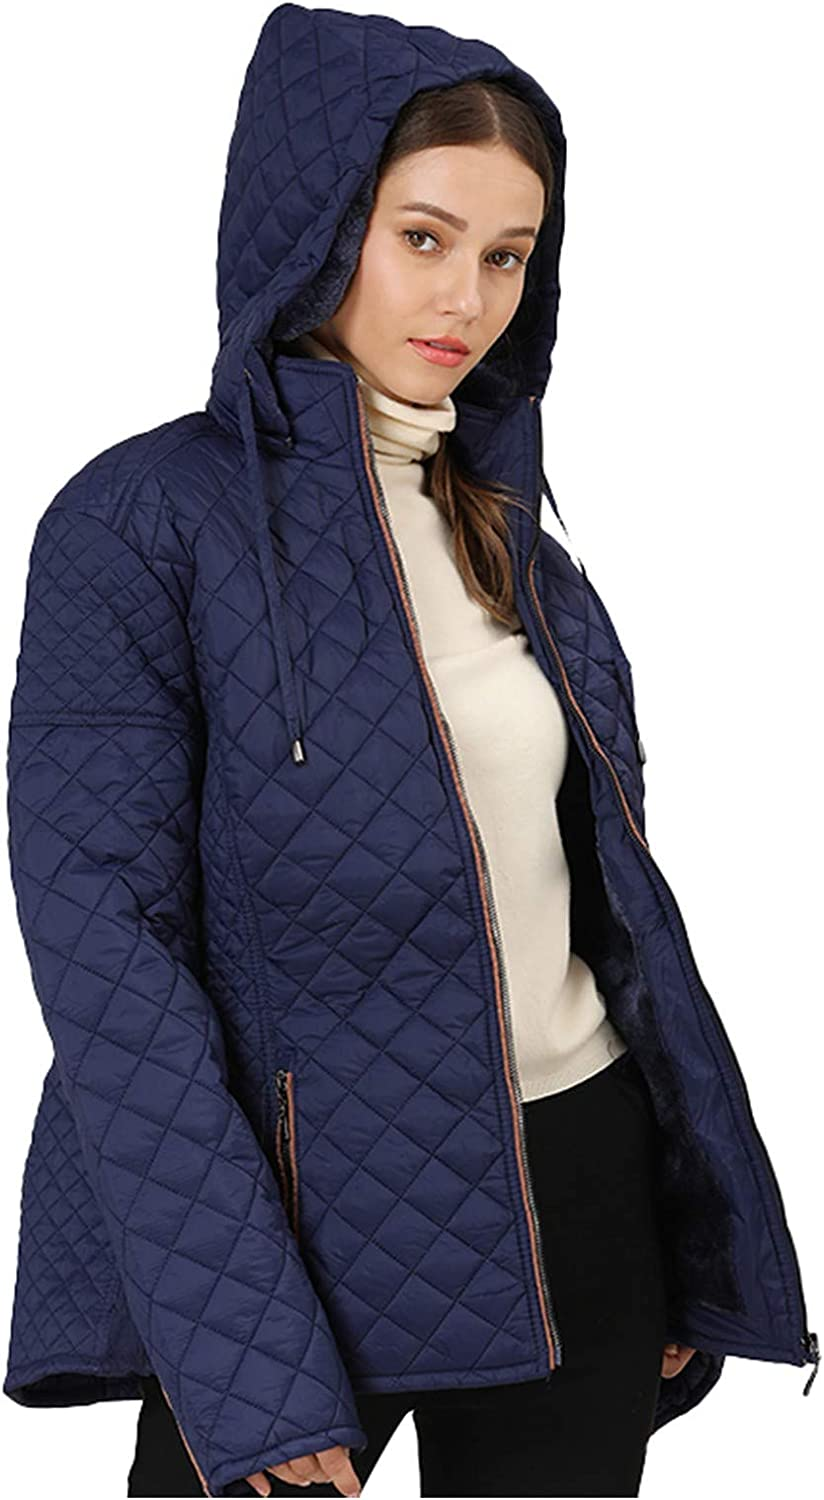 Womens Plus Size Puffer Coat, Sayhi Quilted Jacket Lightweight Full-Zip Short Overcoat Casual Outwear with Drawstring